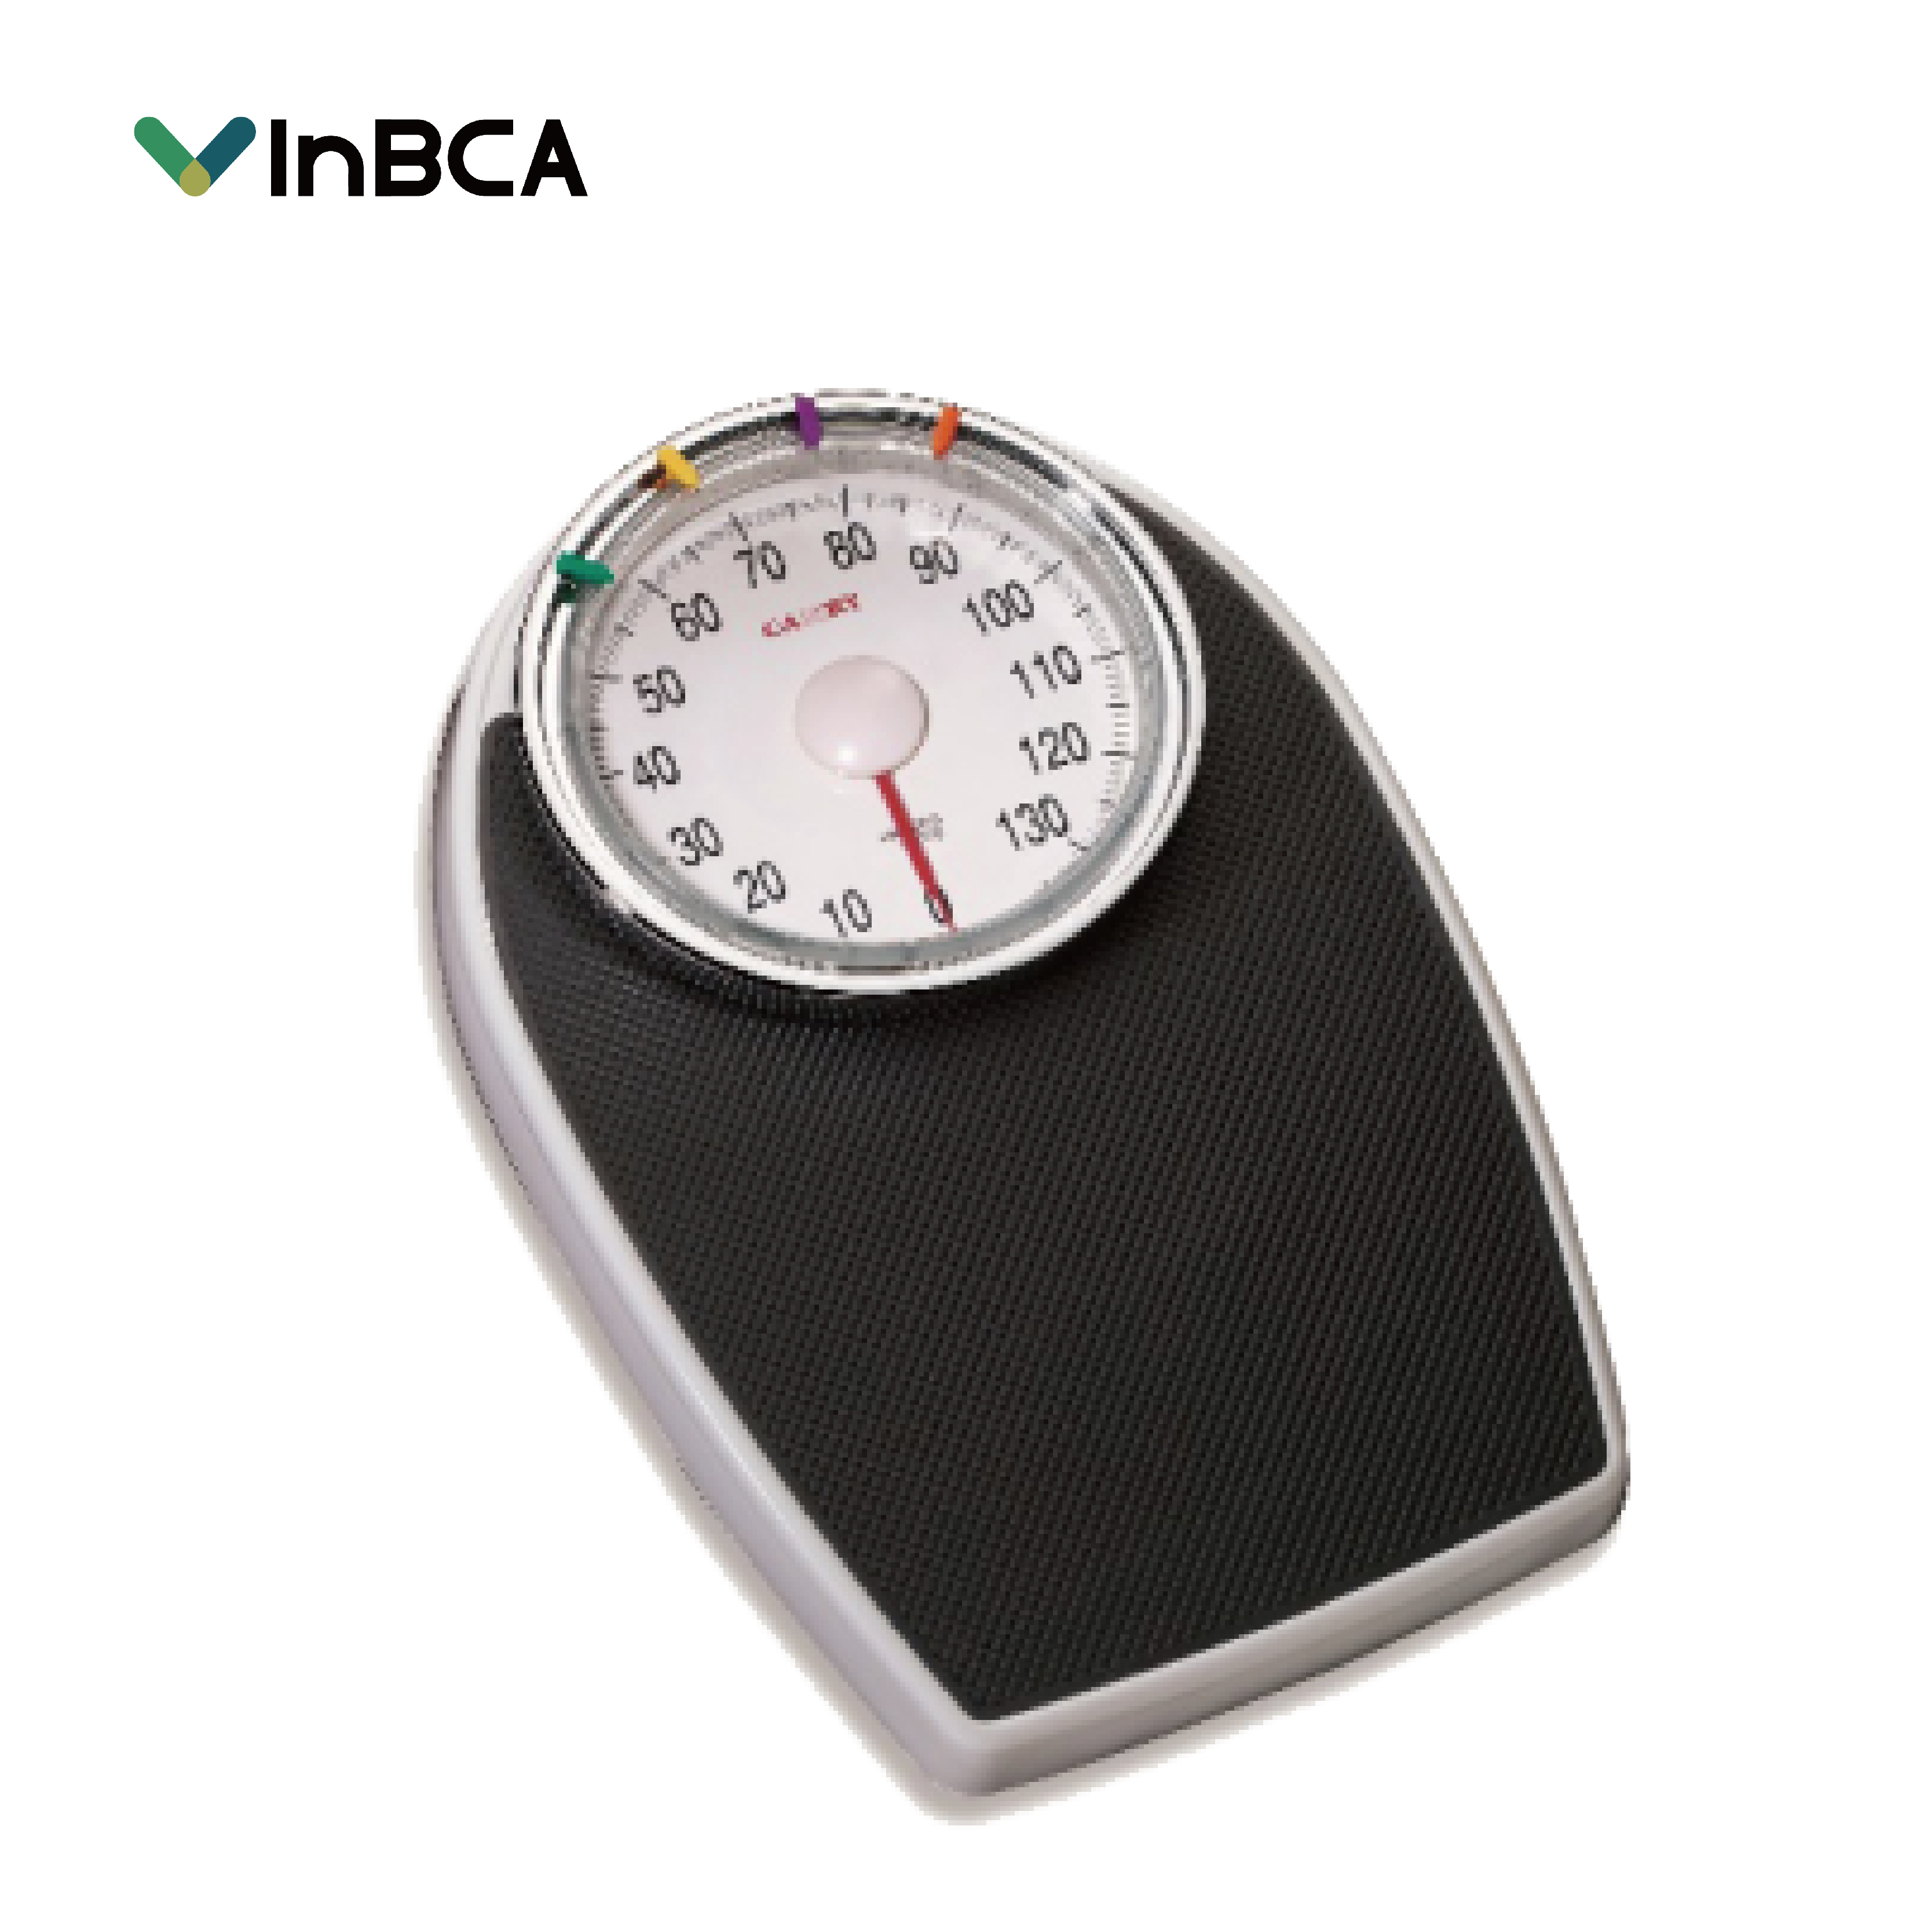 New Design Auto Off Digital Weight Scale Household Bathroom Portable Digital Weighing Scale Buy Weight Scale 25kg Weight Scale Electronic Weight Scale 300kg Product On Alibaba Com